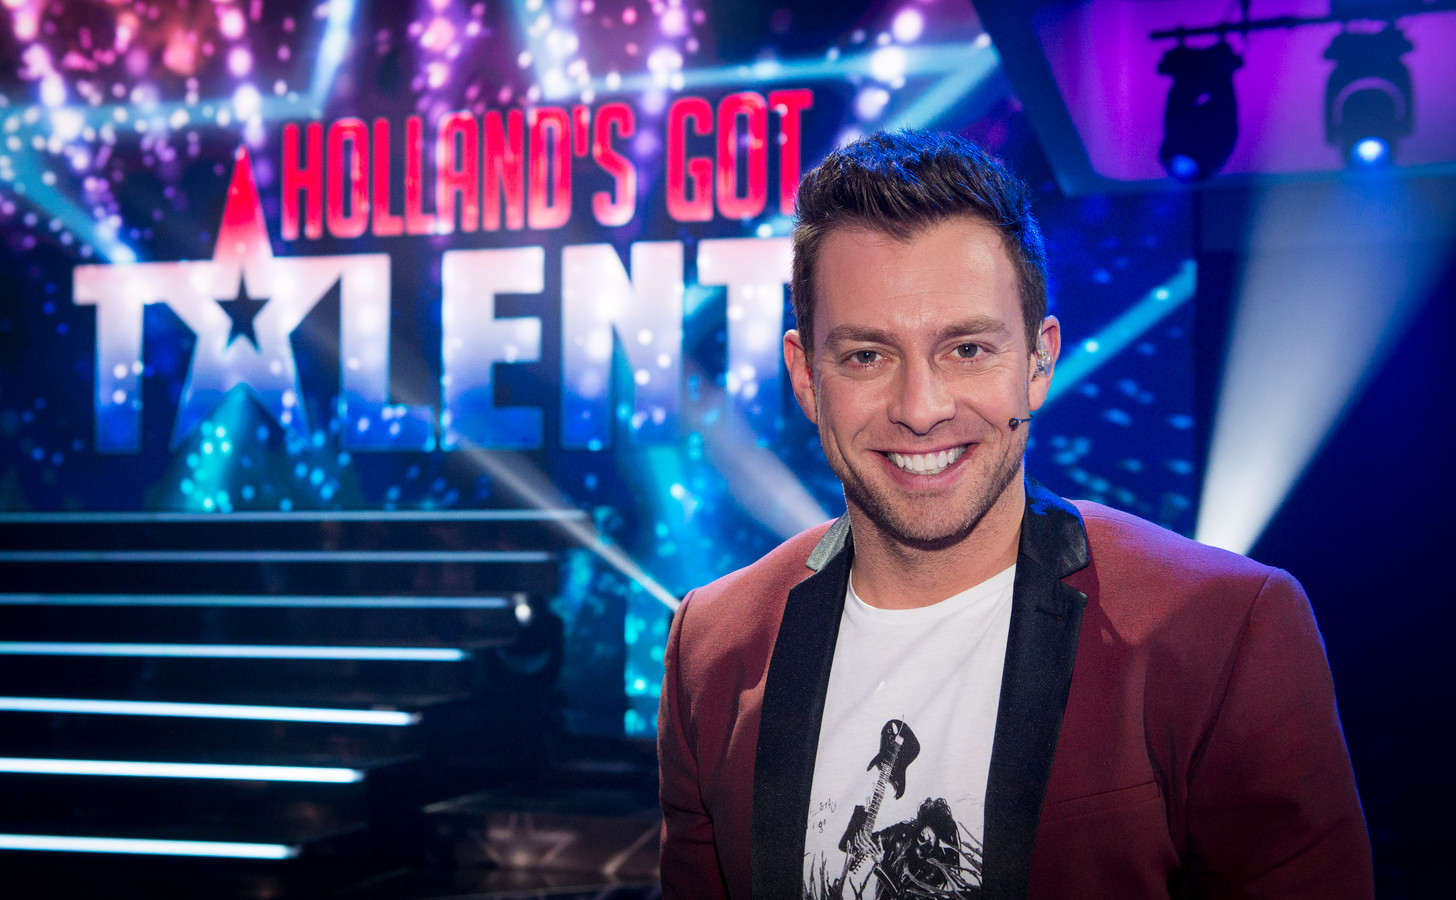 Dan Karaty , jurylid van Holland's Got Talent.